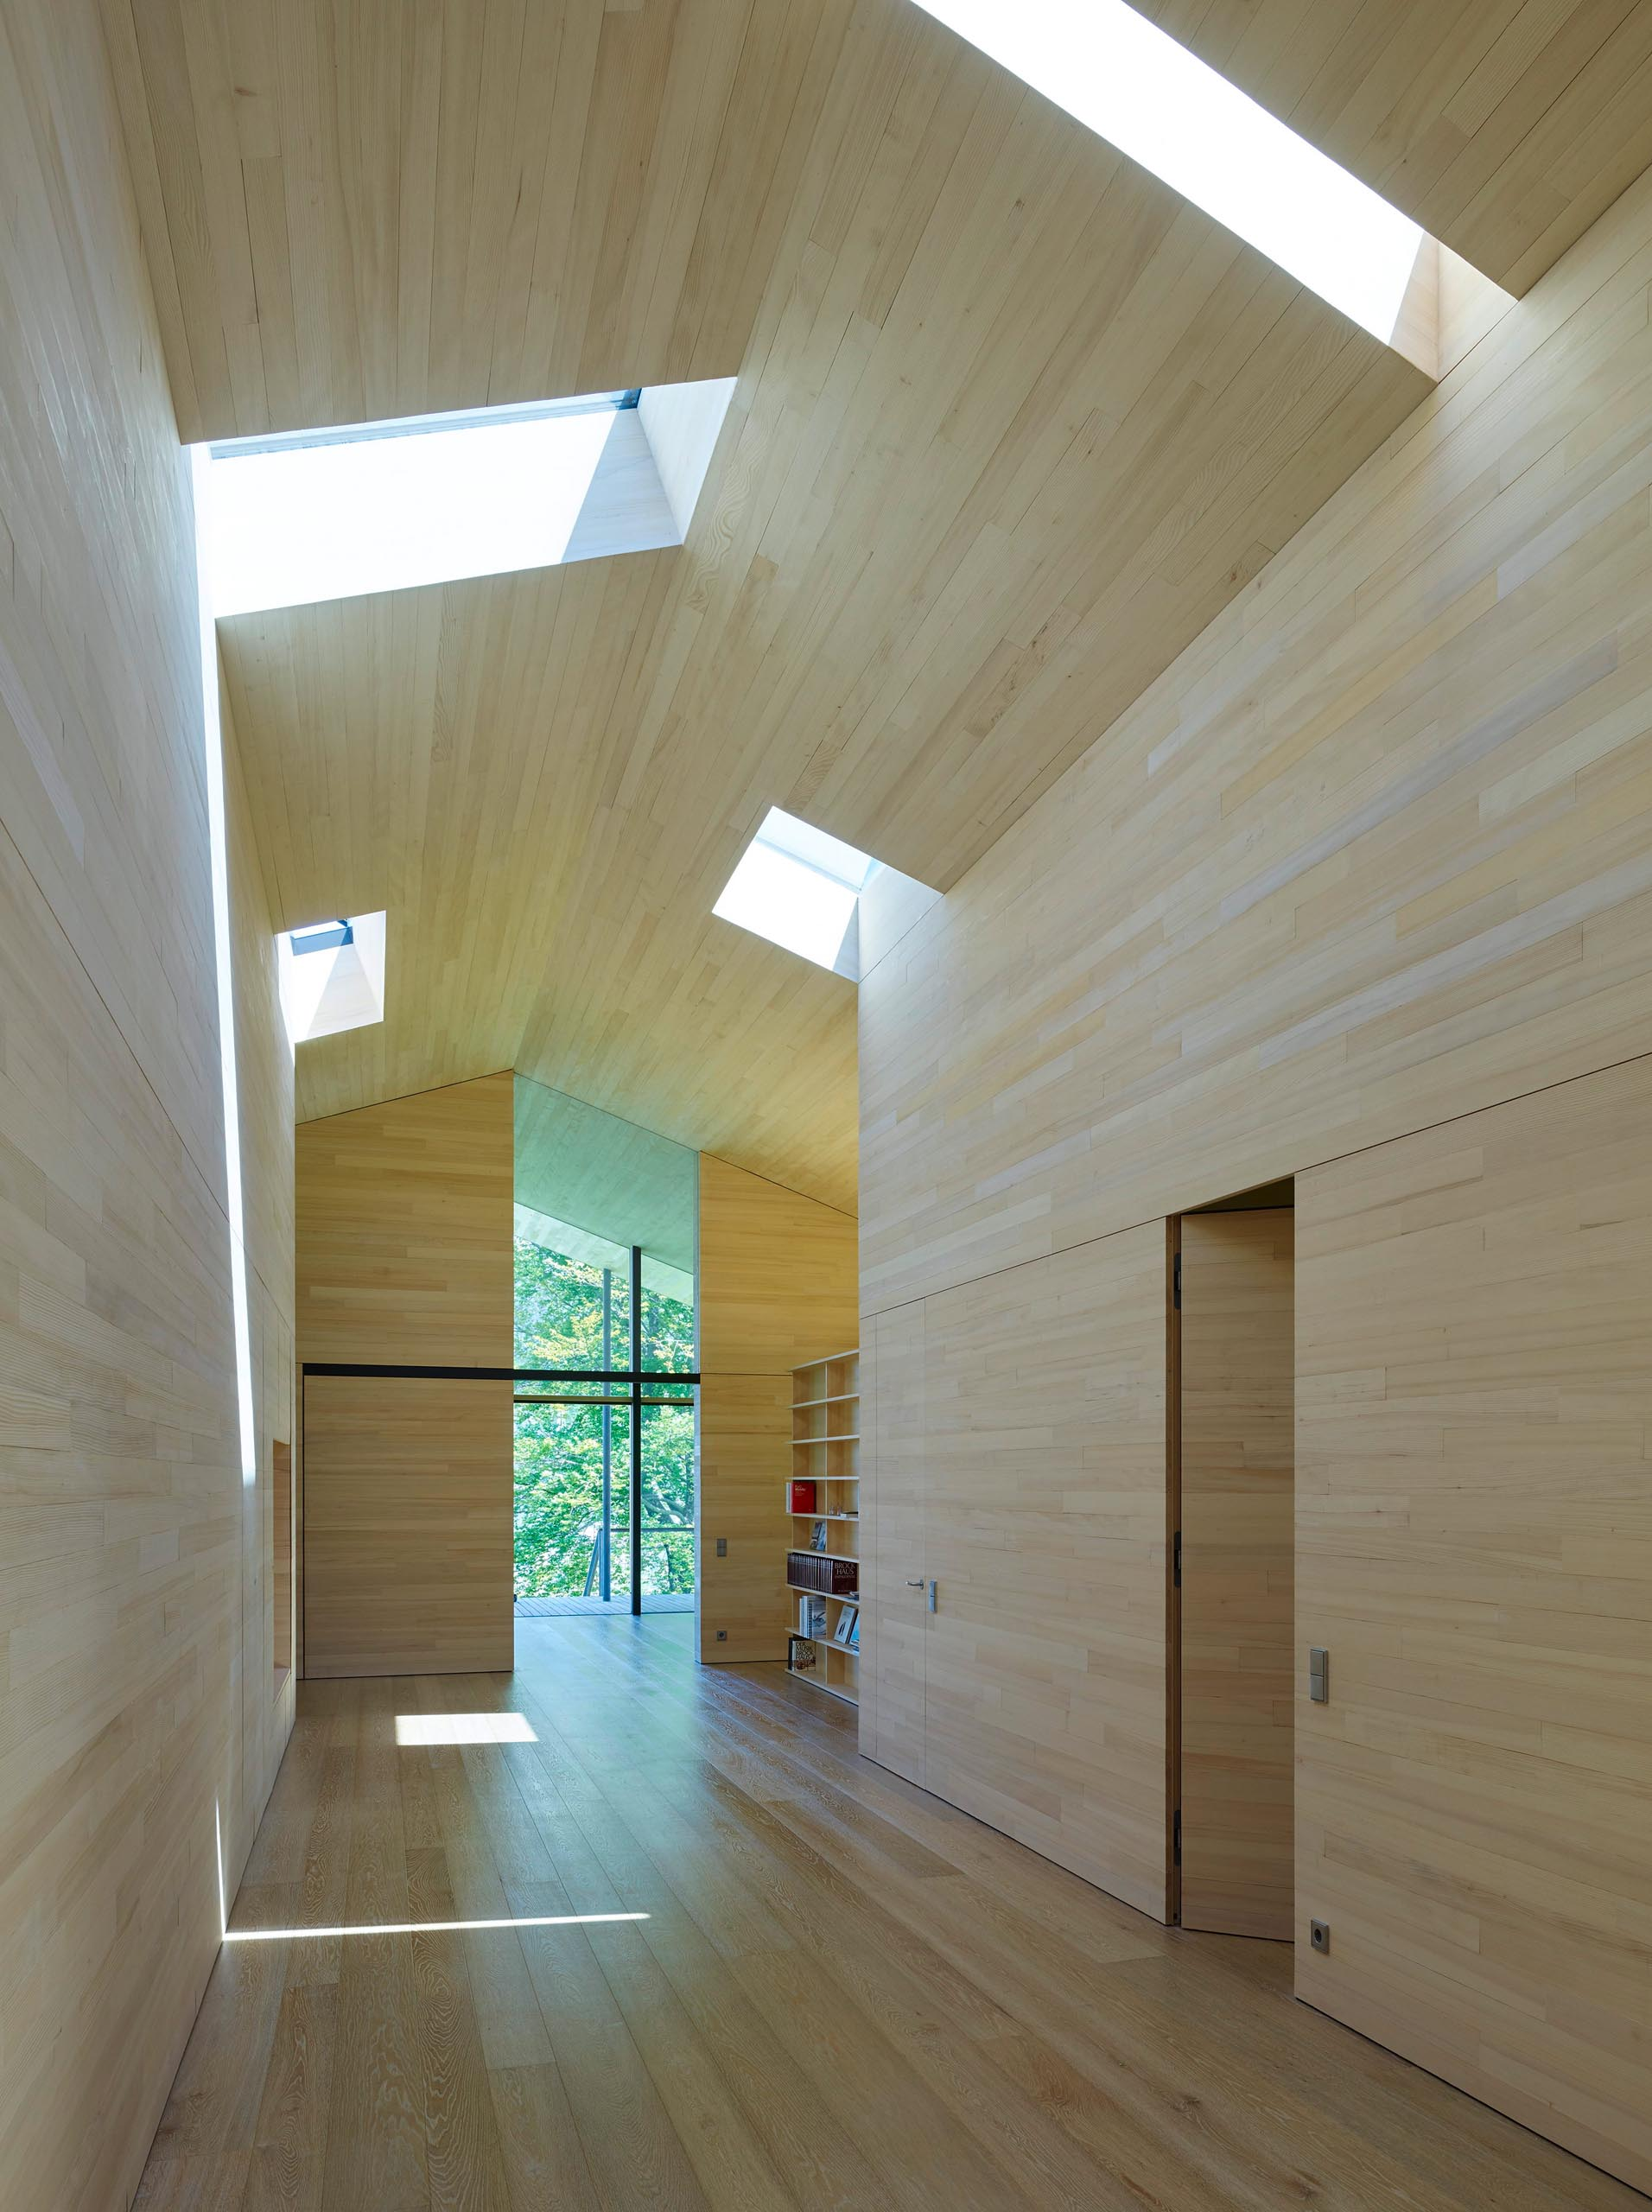 Inside this home, wood lines the walls, floor, and ceiling, while skylights brighten the hallway leading from the door to the social areas.